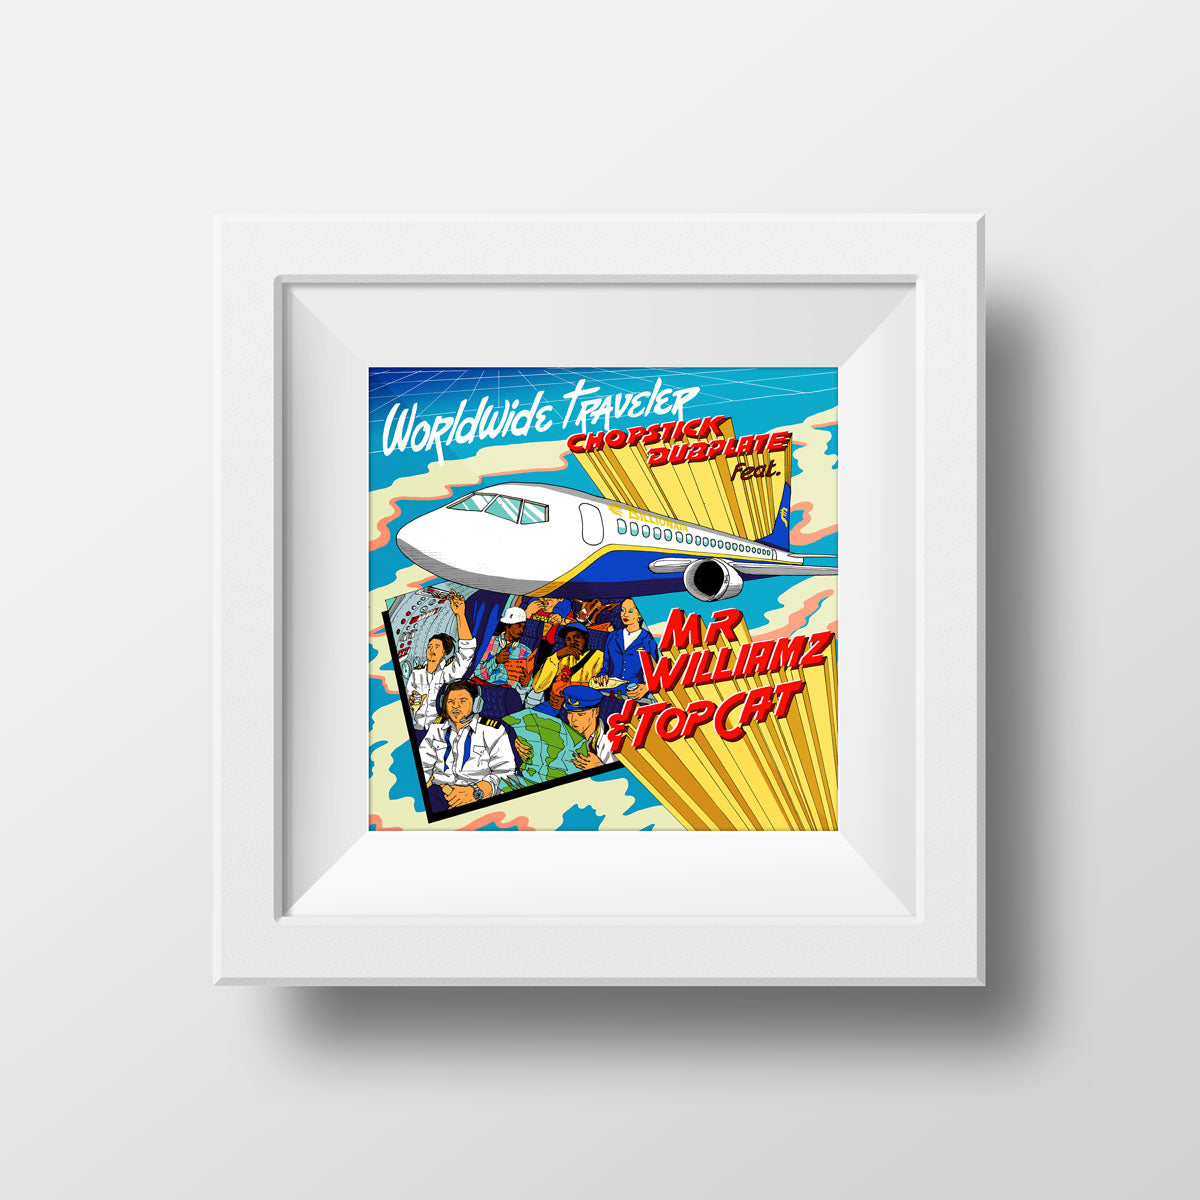 Worldwide Traveller Art Print by Chopstick Dubplate